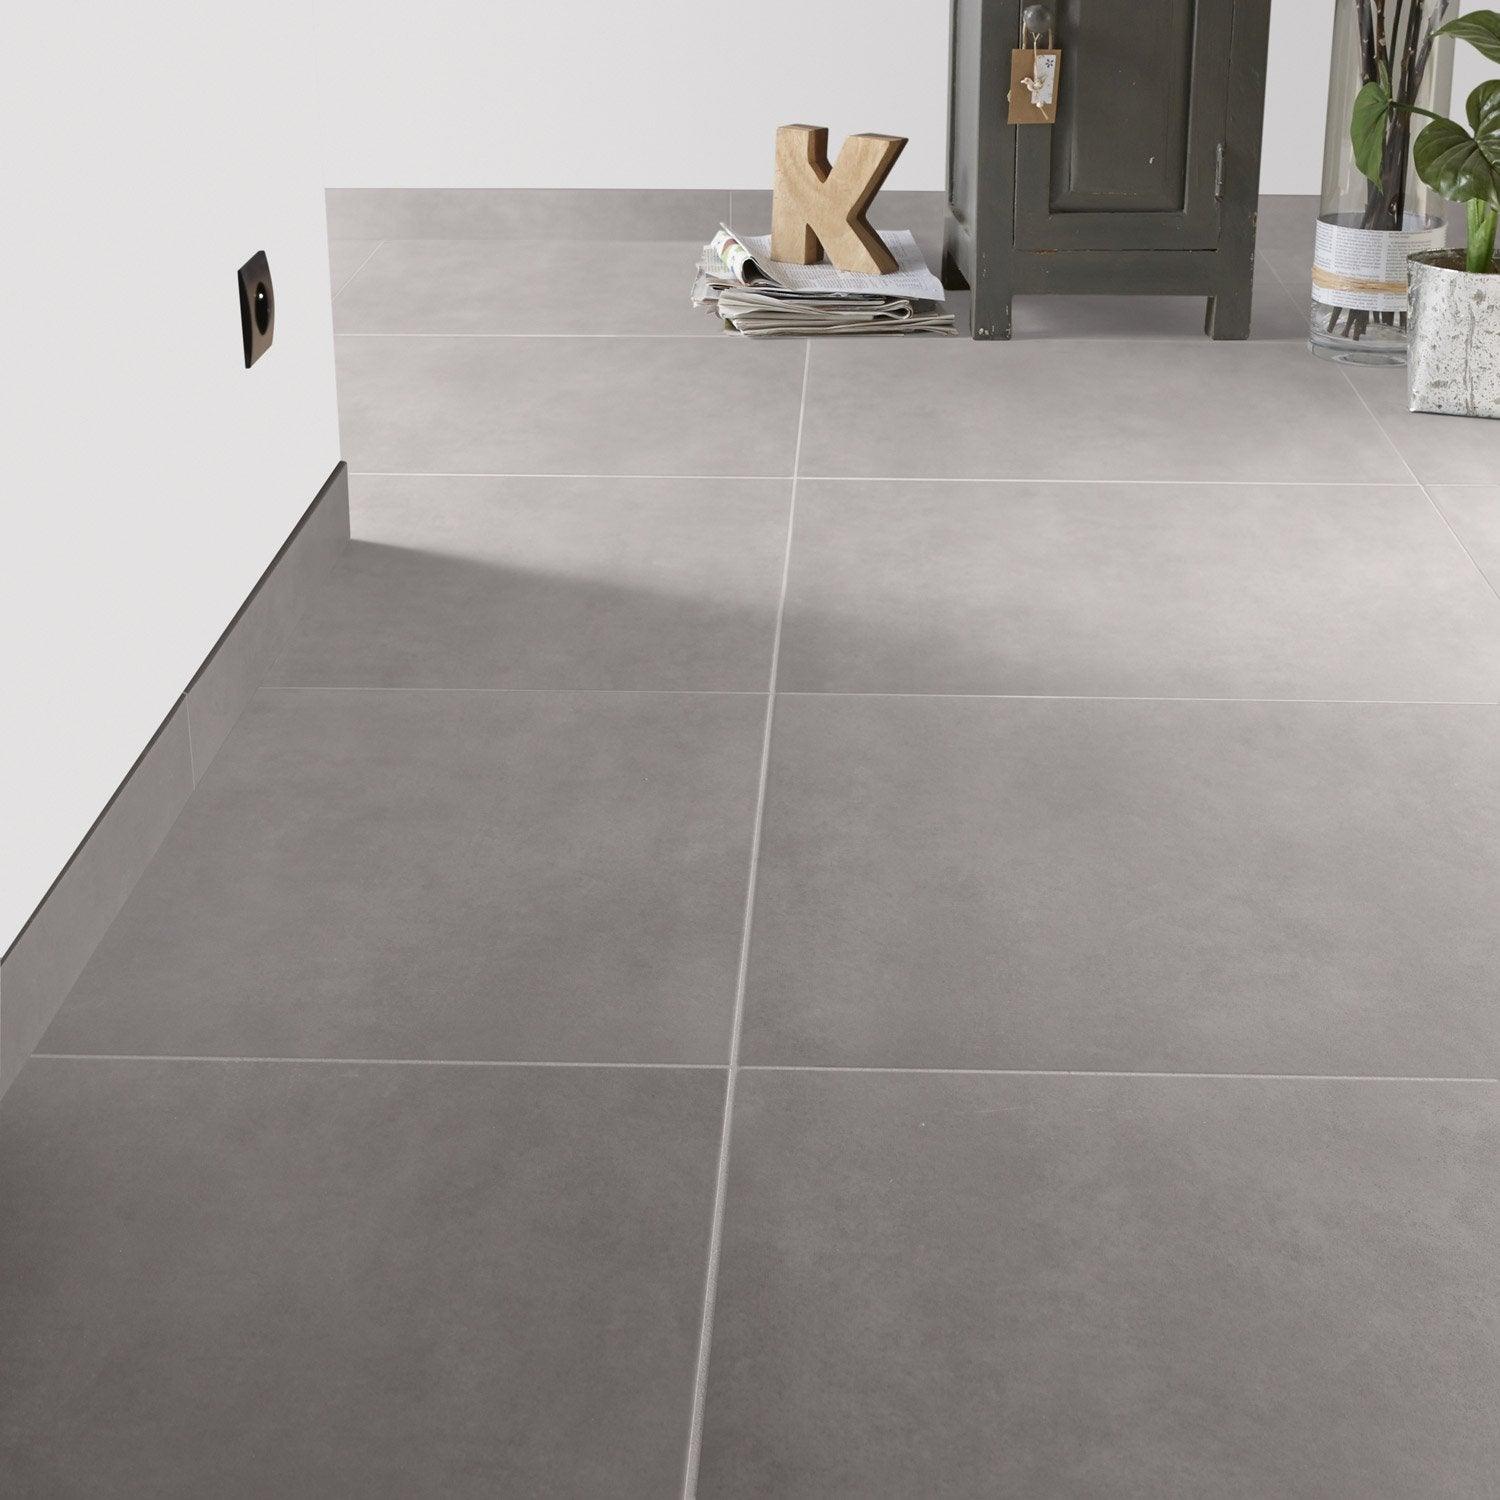 carrelage design carrelage gris 60x60 moderne design